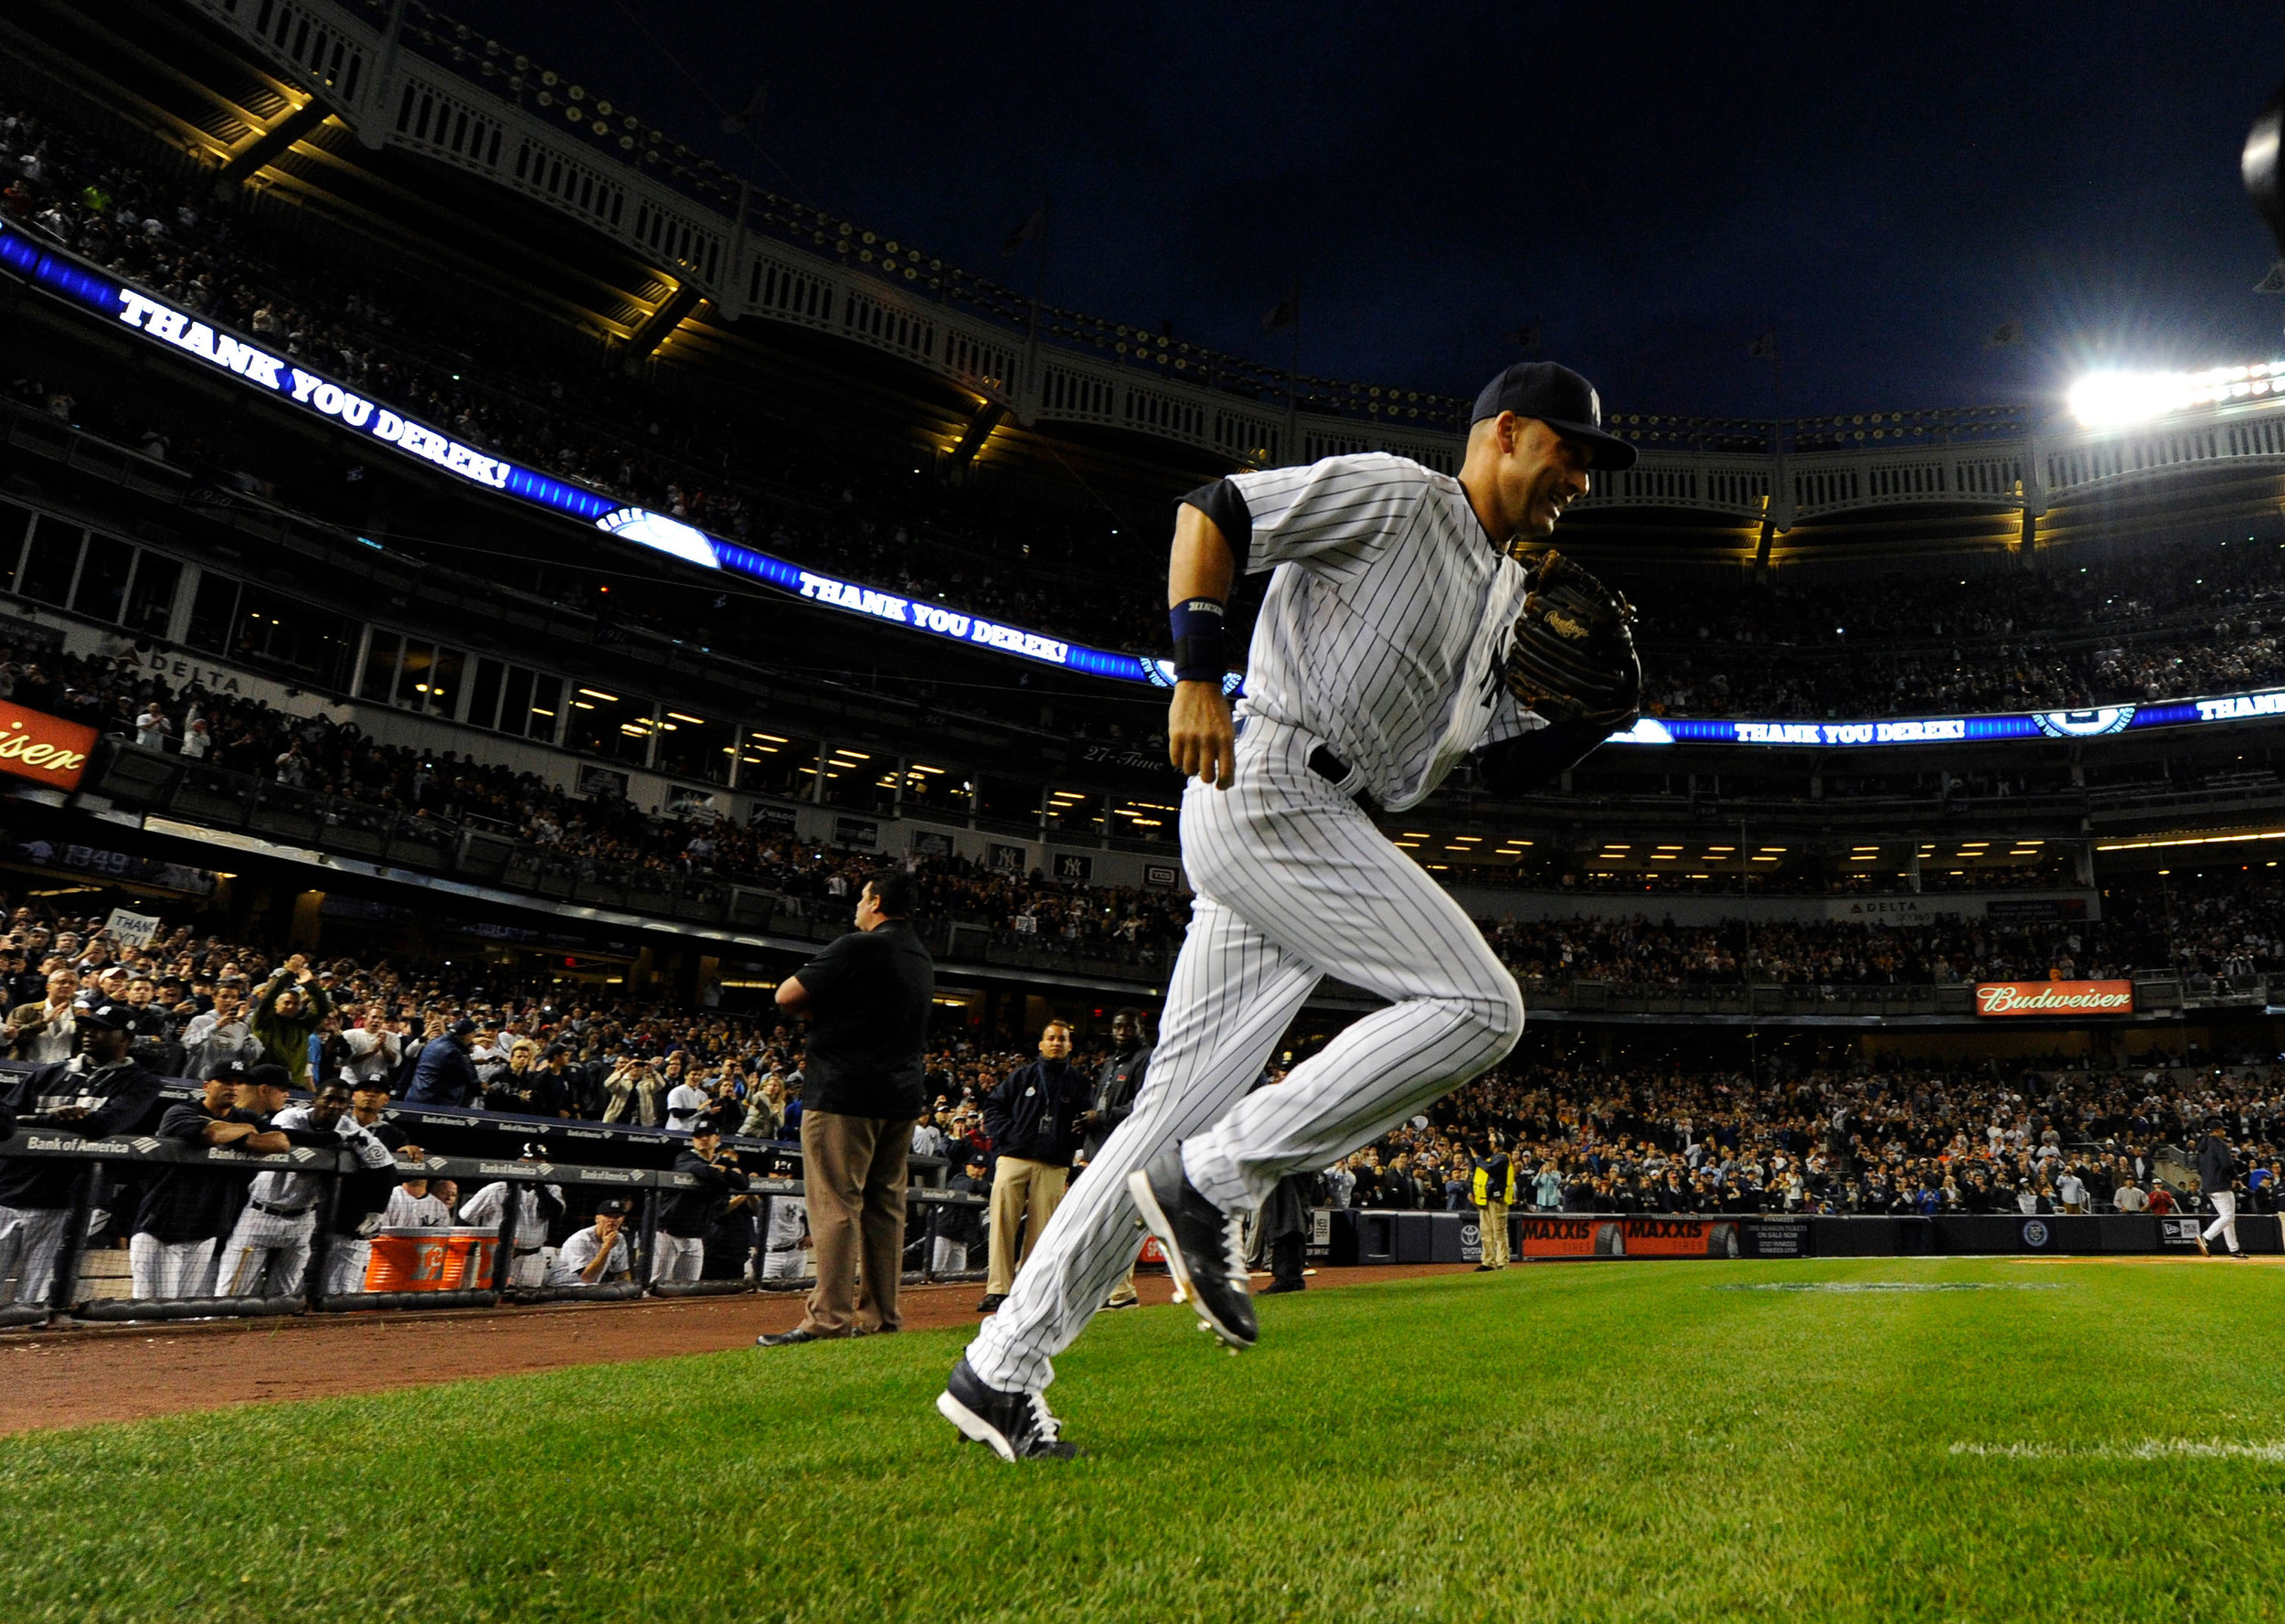 Derek Jeter runs out for the last time at Yankee Stadium against the Baltimore Orioles on Septmeber 25, 2014. The shortstop played 20 seasons for the Yankees, winning five World Series. Legends like Jeter are used to inspire current players and instil them with a sense of history and identity. Image supplied by Ac  tion Images/Rober Deutsch